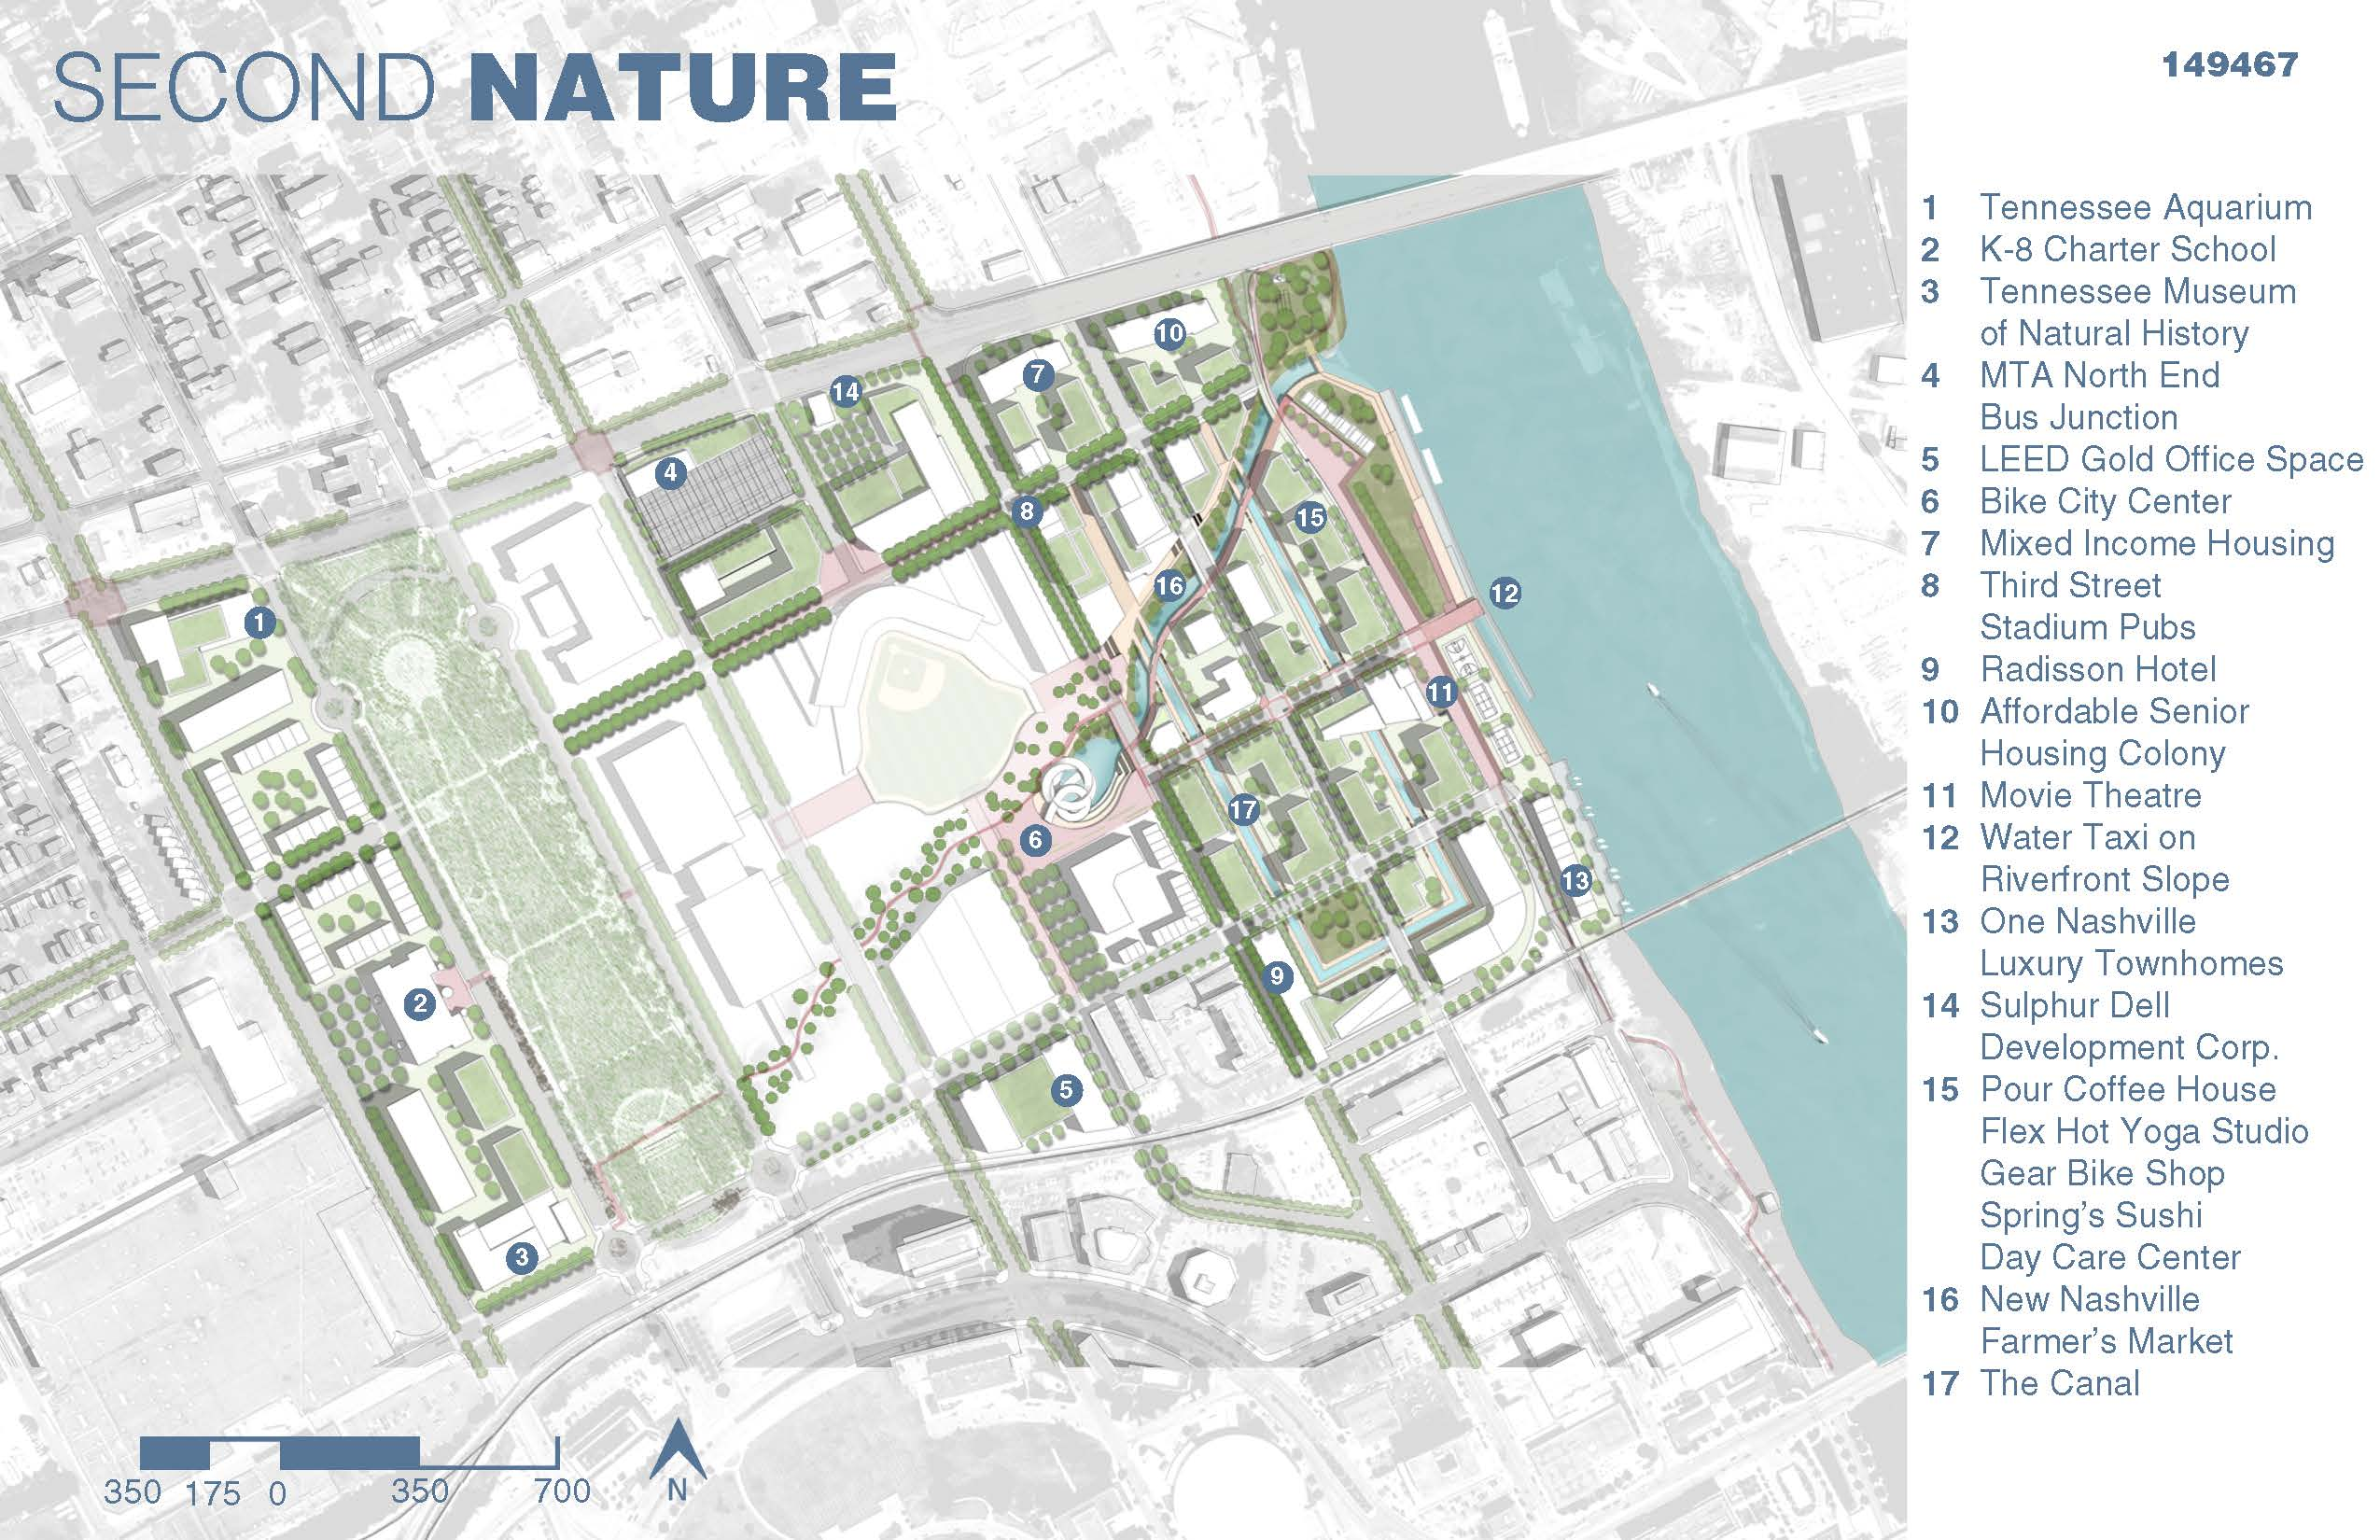 Joint CWRU/Kent State team wins honorable mention at design ... on rochester state map, kent ohio, northern minnesota state map, north east region state map, quintana roo state map, deerwood campus map, northern wisconsin state map, yale state map, walla walla state map, tucson state map, hillsdale state map, kentucky state map, kenosha state map, n.c. state map, dayton state map, saginaw valley map, augusta state map, dupont state map, montgomery state map, spokane state map,